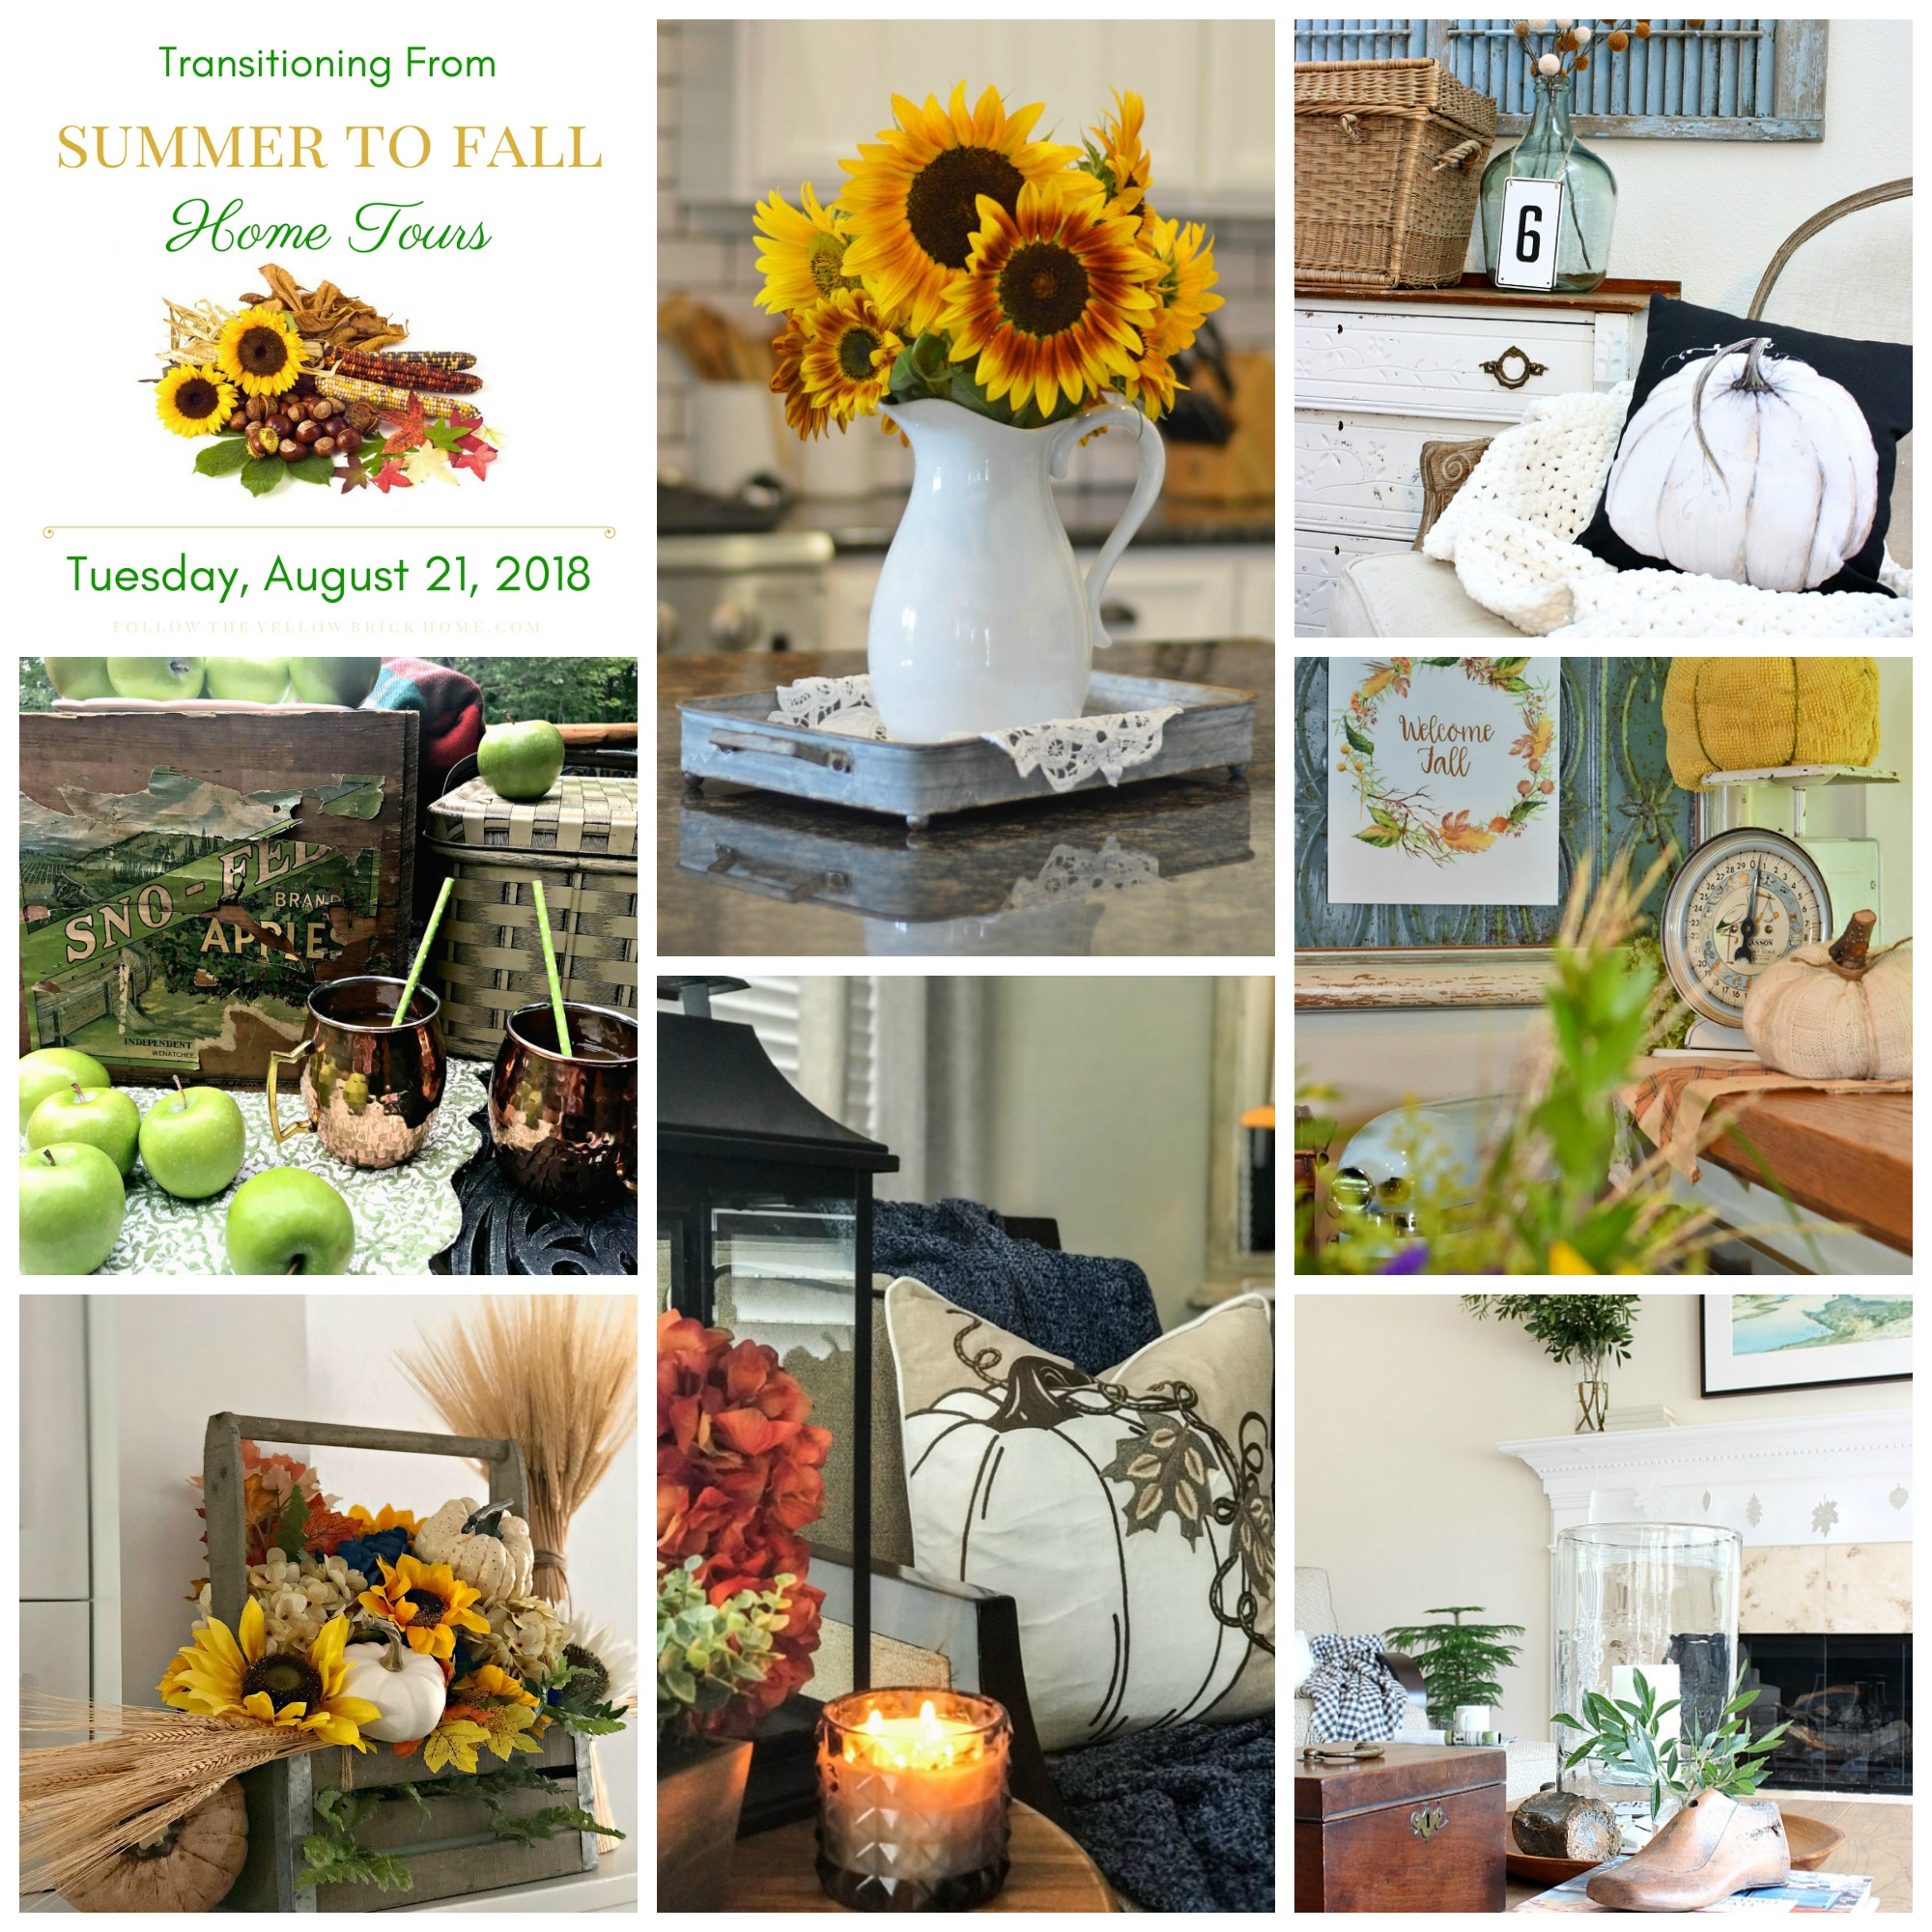 Welcome To The Transitioning From Summer To Fall Home Tours Hosted By Amber  At Follow The Yellow Brick Home!